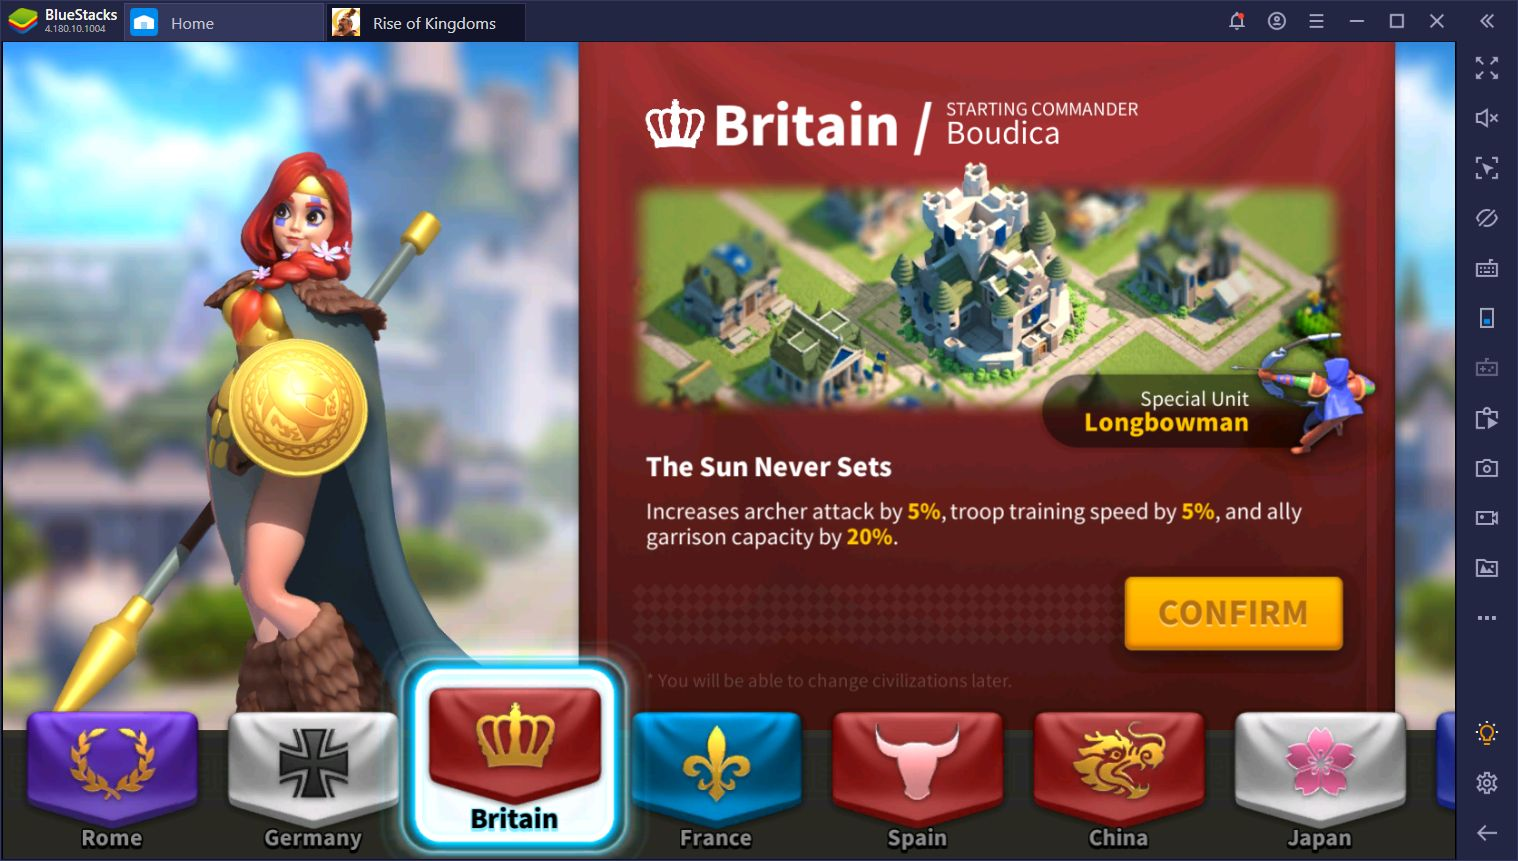 Rise of Kingdoms - Tips for Progressing as a Free-to-Play Player